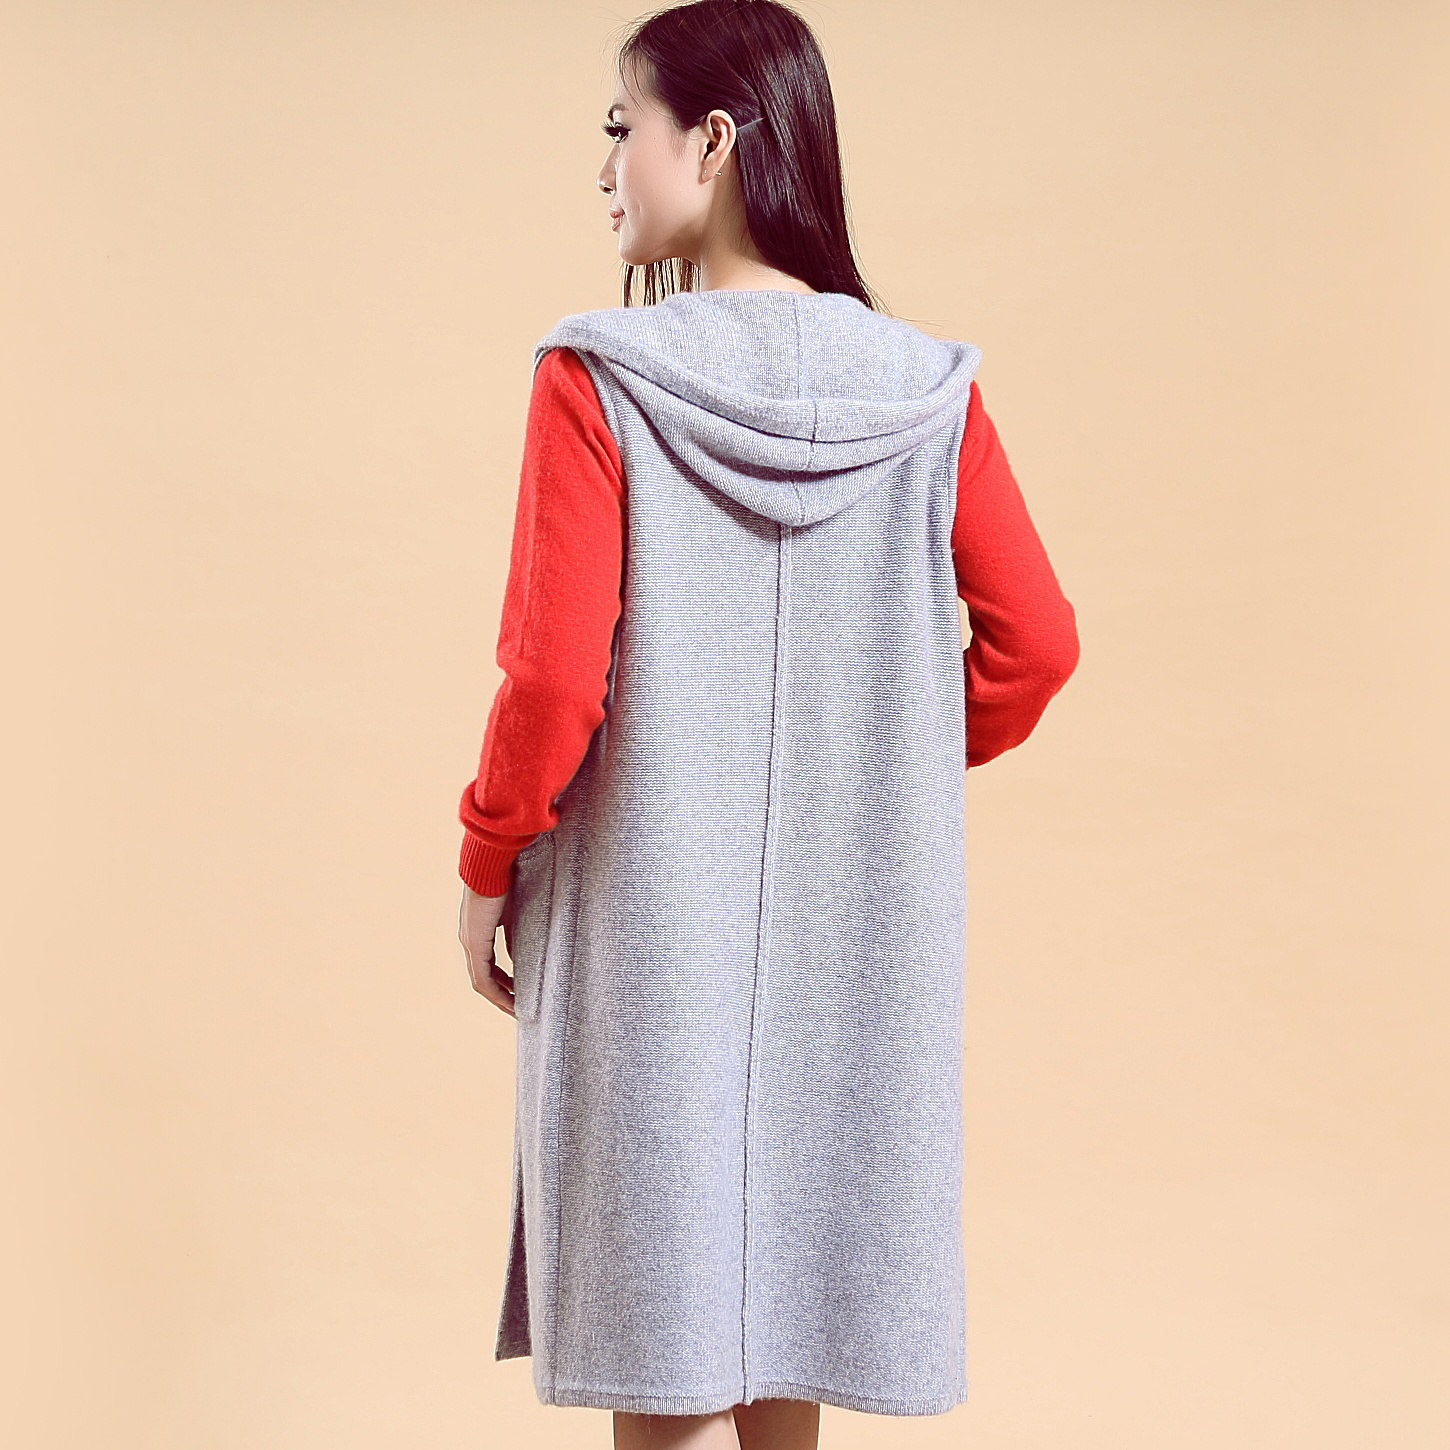 Cashmere sleeveless vest Cardigan sweater